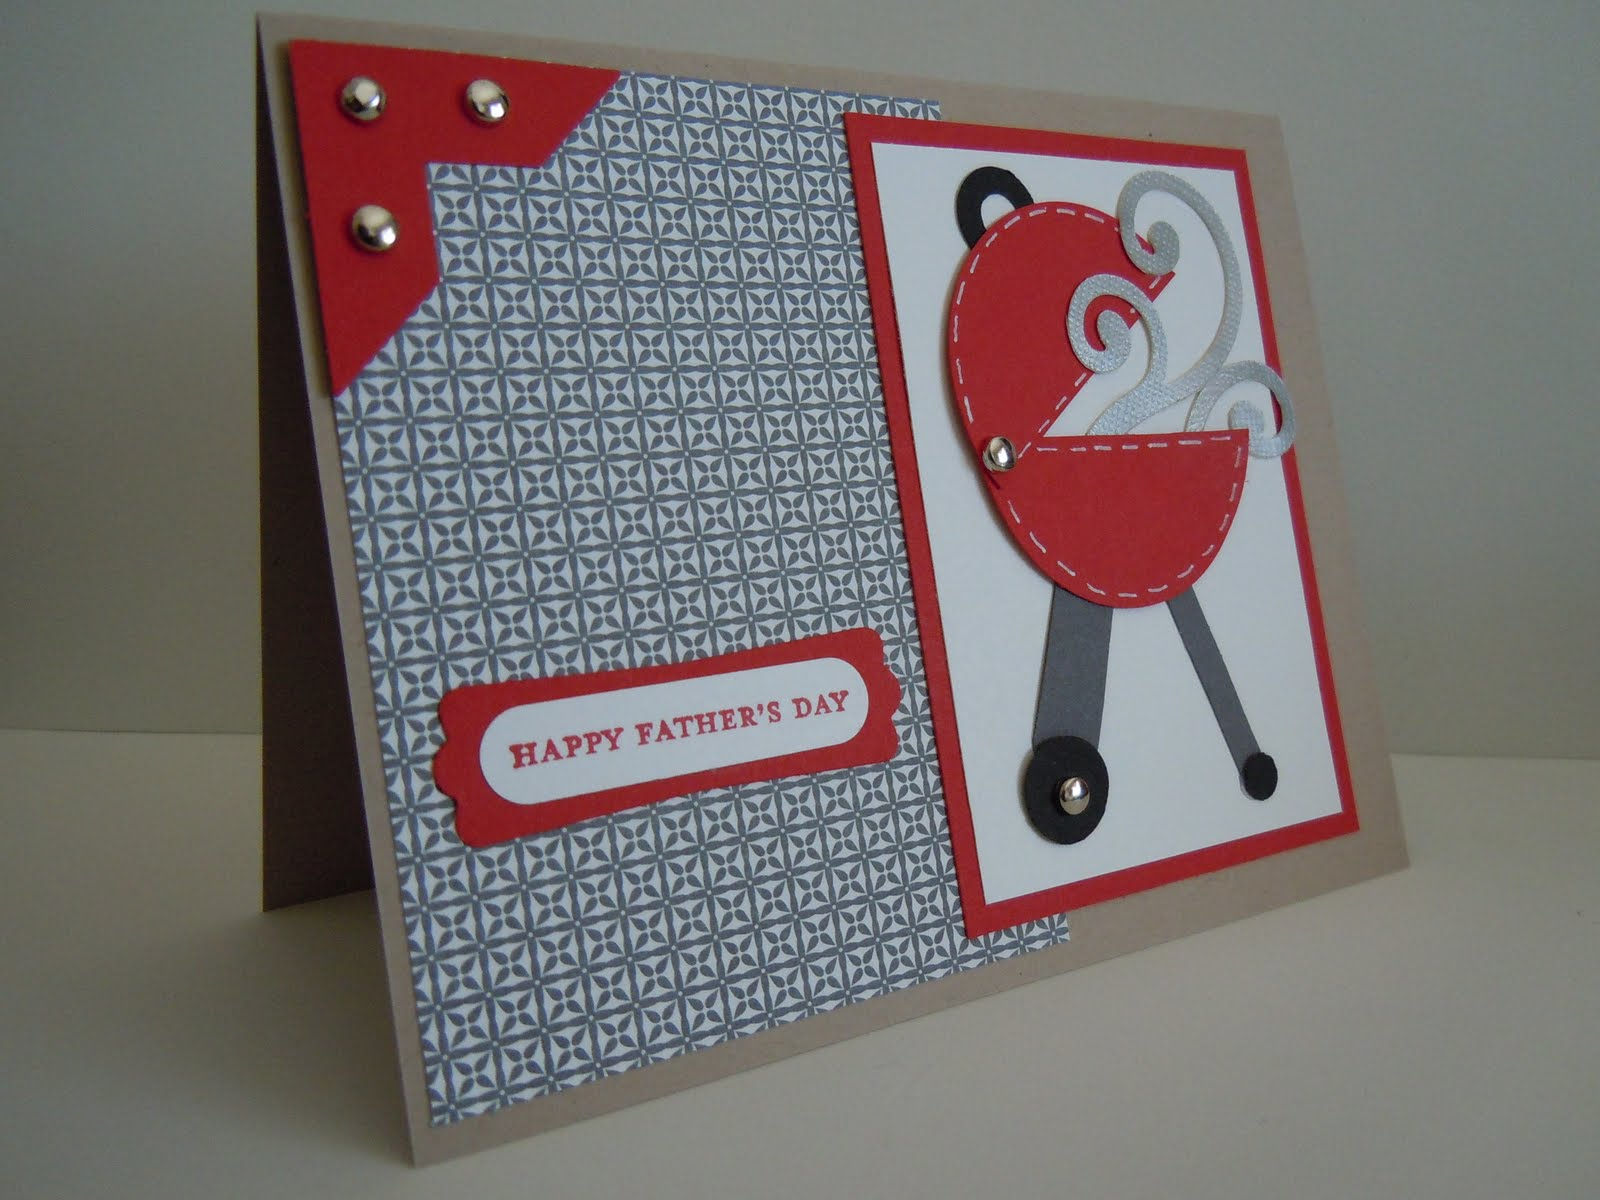 Happy Fatheru0027s Day BBQ Card ~